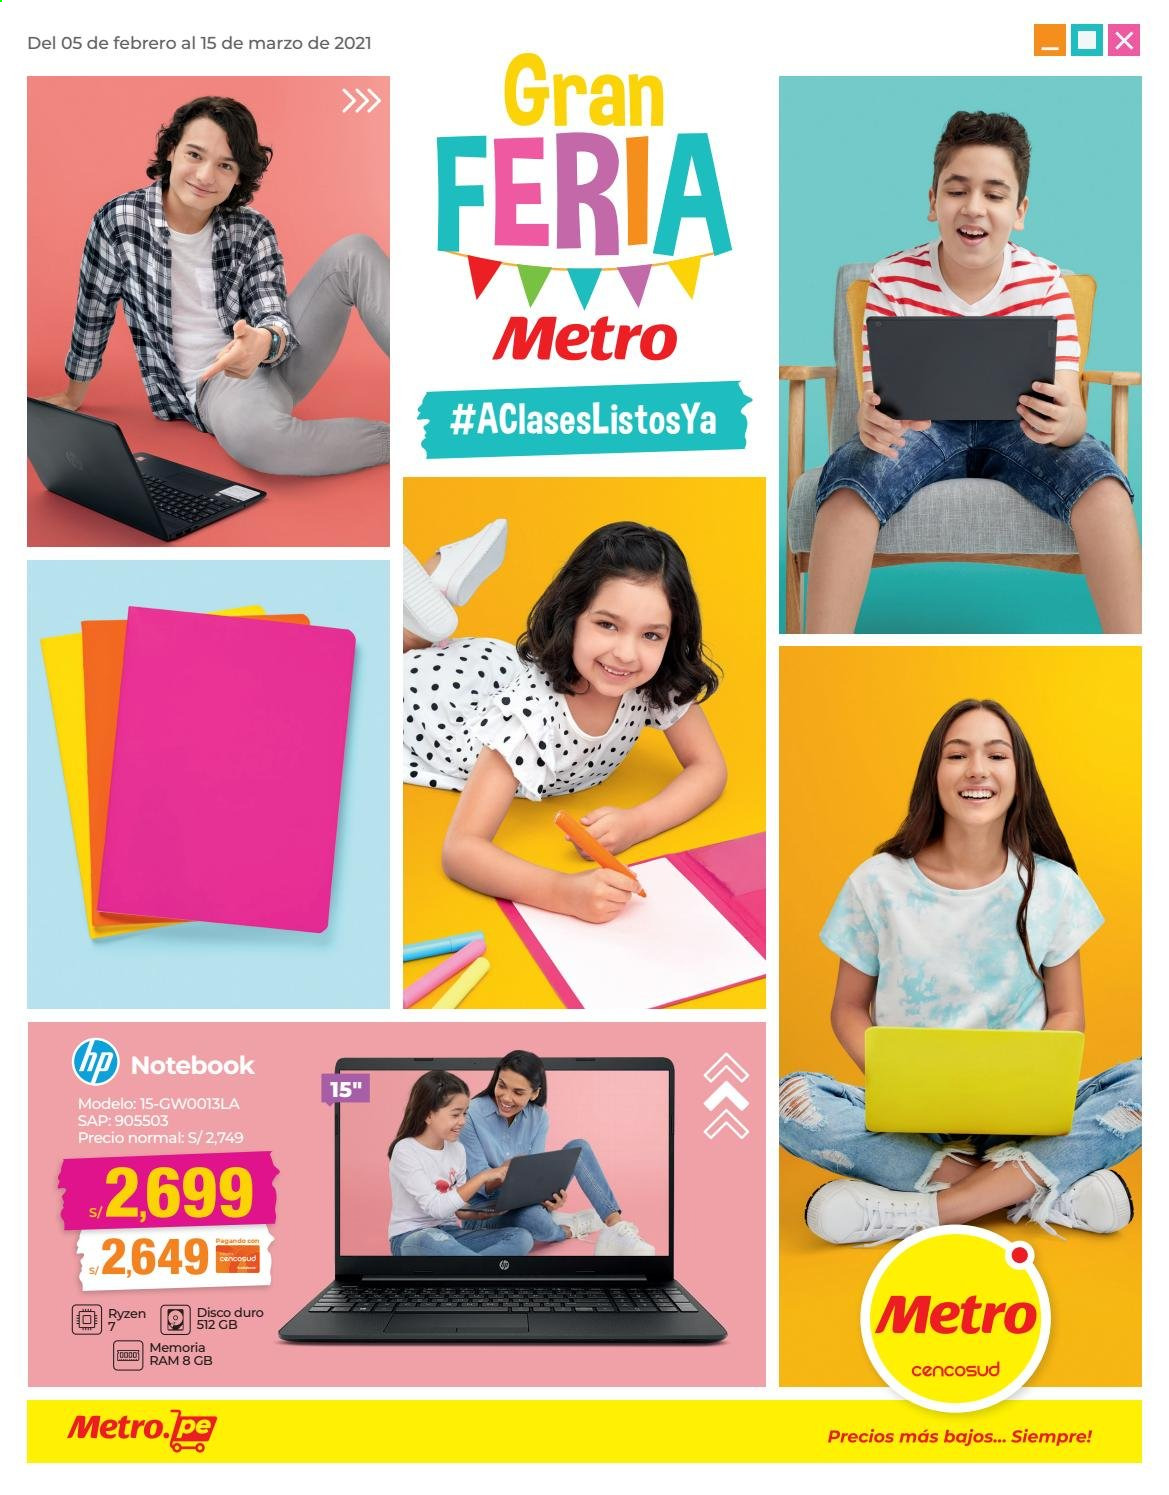 Folleto actual Metro - 5.2.2021 - 15.3.2021 - Ventas - disco duro, hp, disco, metro, notebook. Página 1.